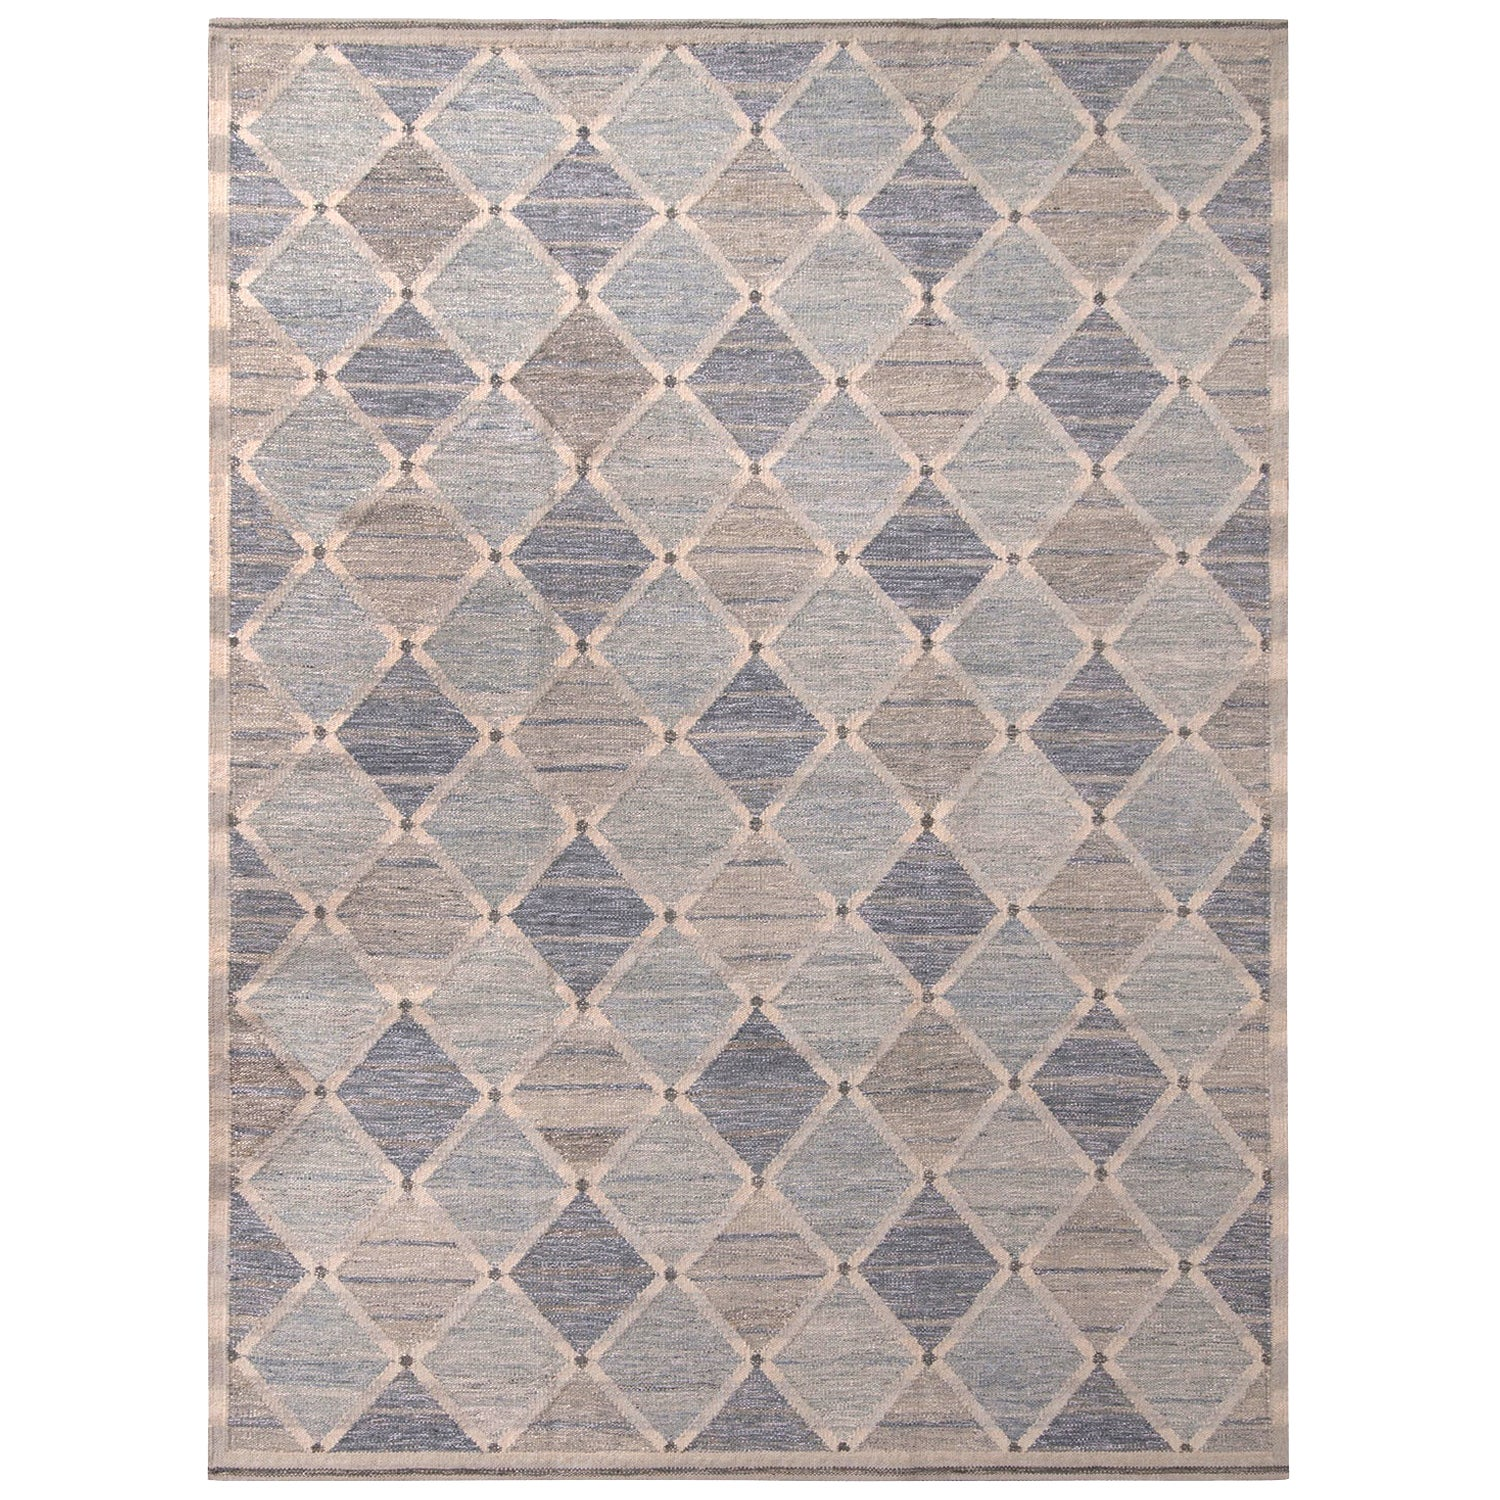 Rug & Kilim's Scandinavian Style Geometric Diamond Gray and Blue Wool Kilim